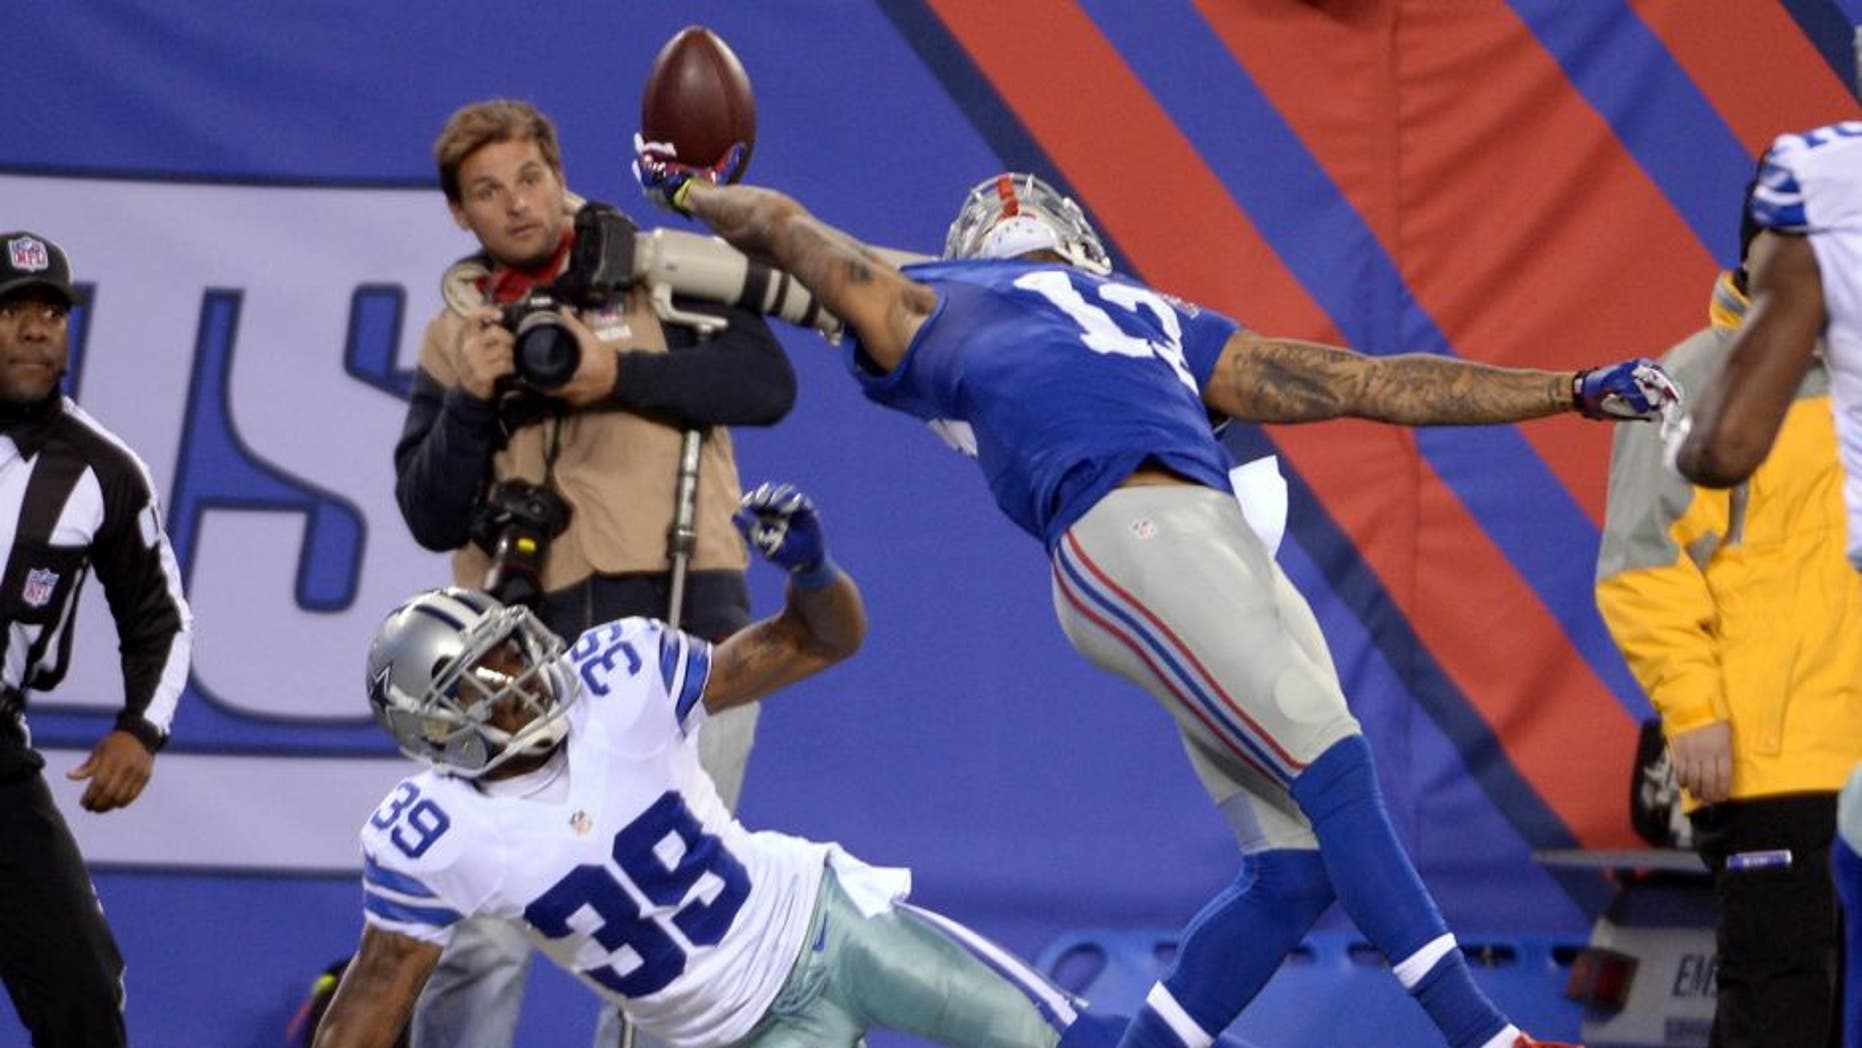 Nov 23, 2014; East Rutherford, NJ, USA; New York Giants wide receiver Odell Beckham (13) catches a one handed touchdown against by Dallas Cowboys cornerback Brandon Carr (39) during the second quarter at MetLife Stadium. Mandatory Credit: Robert Deutsch-USA TODAY Sports